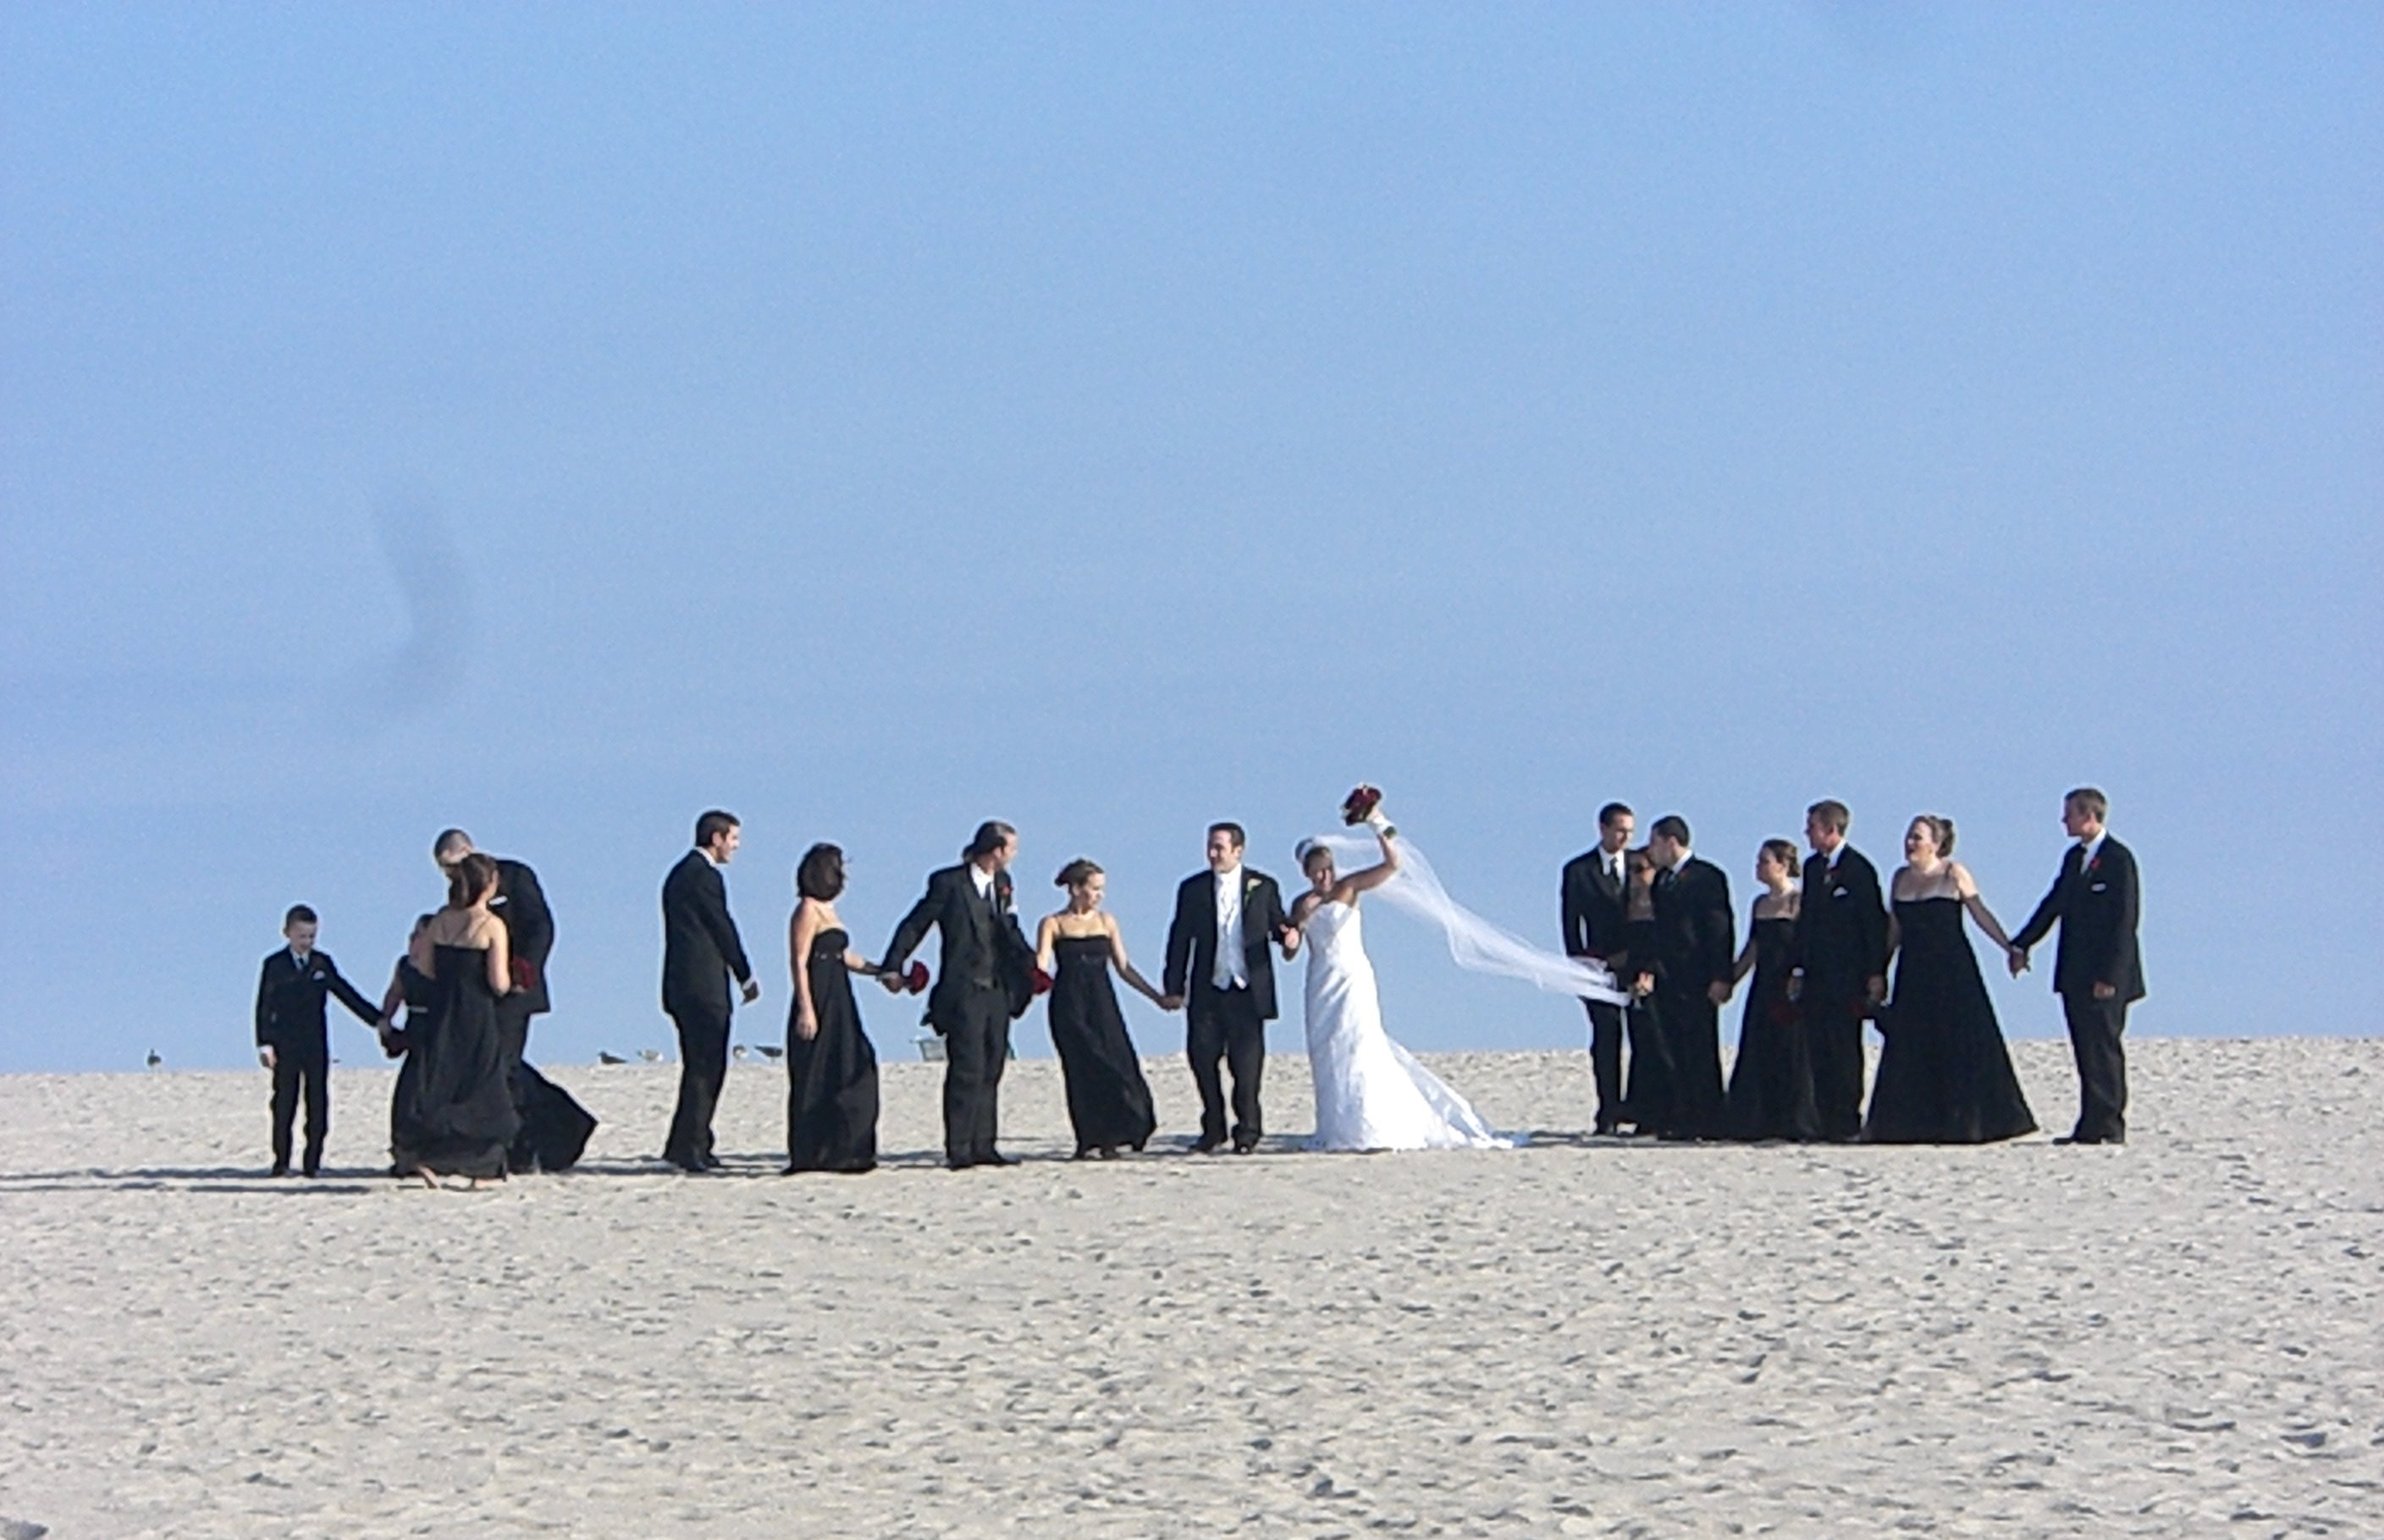 Its not the beach without a wedding